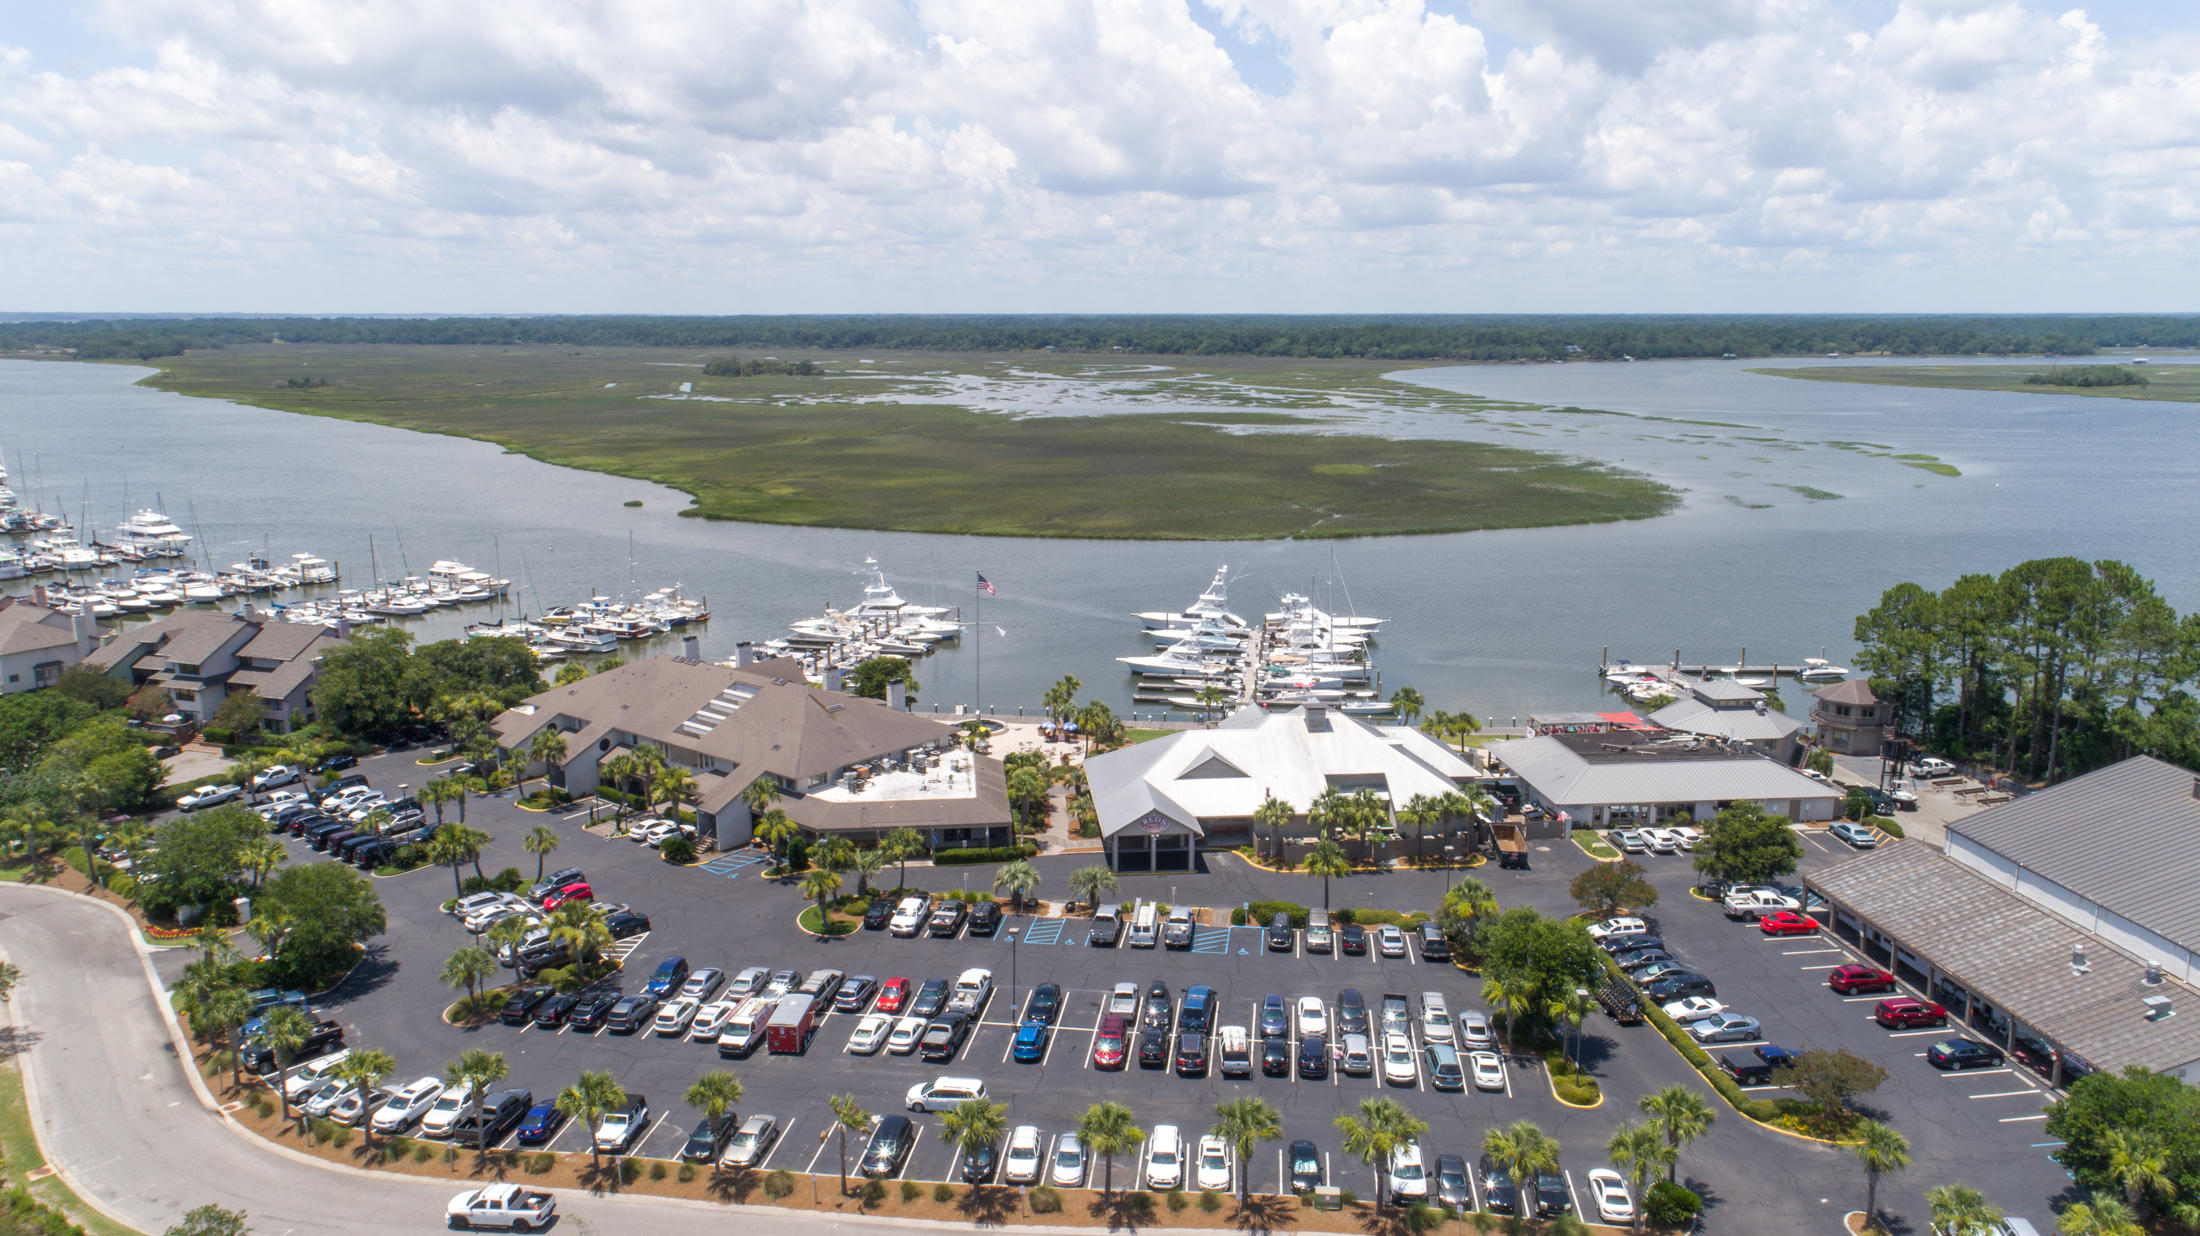 Seabrook Island Homes For Sale - 1880 Andell Bluff, Seabrook Island, SC - 12